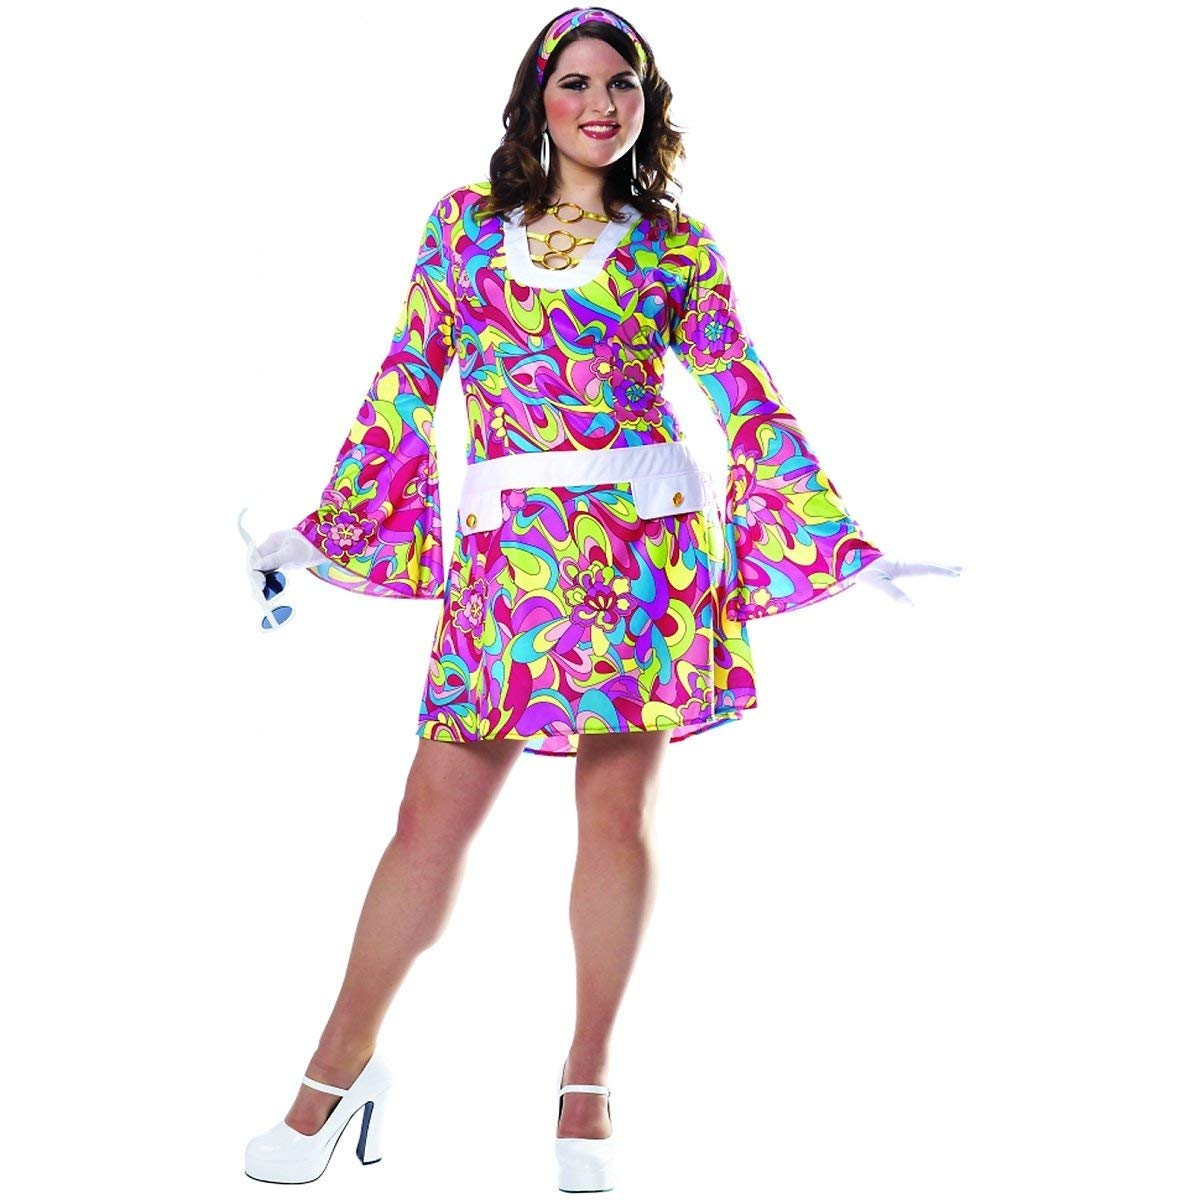 Hippie Costumes, Hippie Outfits Costume Culture Groovy Chic Plus Adult Costume - Plus Size Multicolored Womens Adult XX-Large $40.57 AT vintagedancer.com